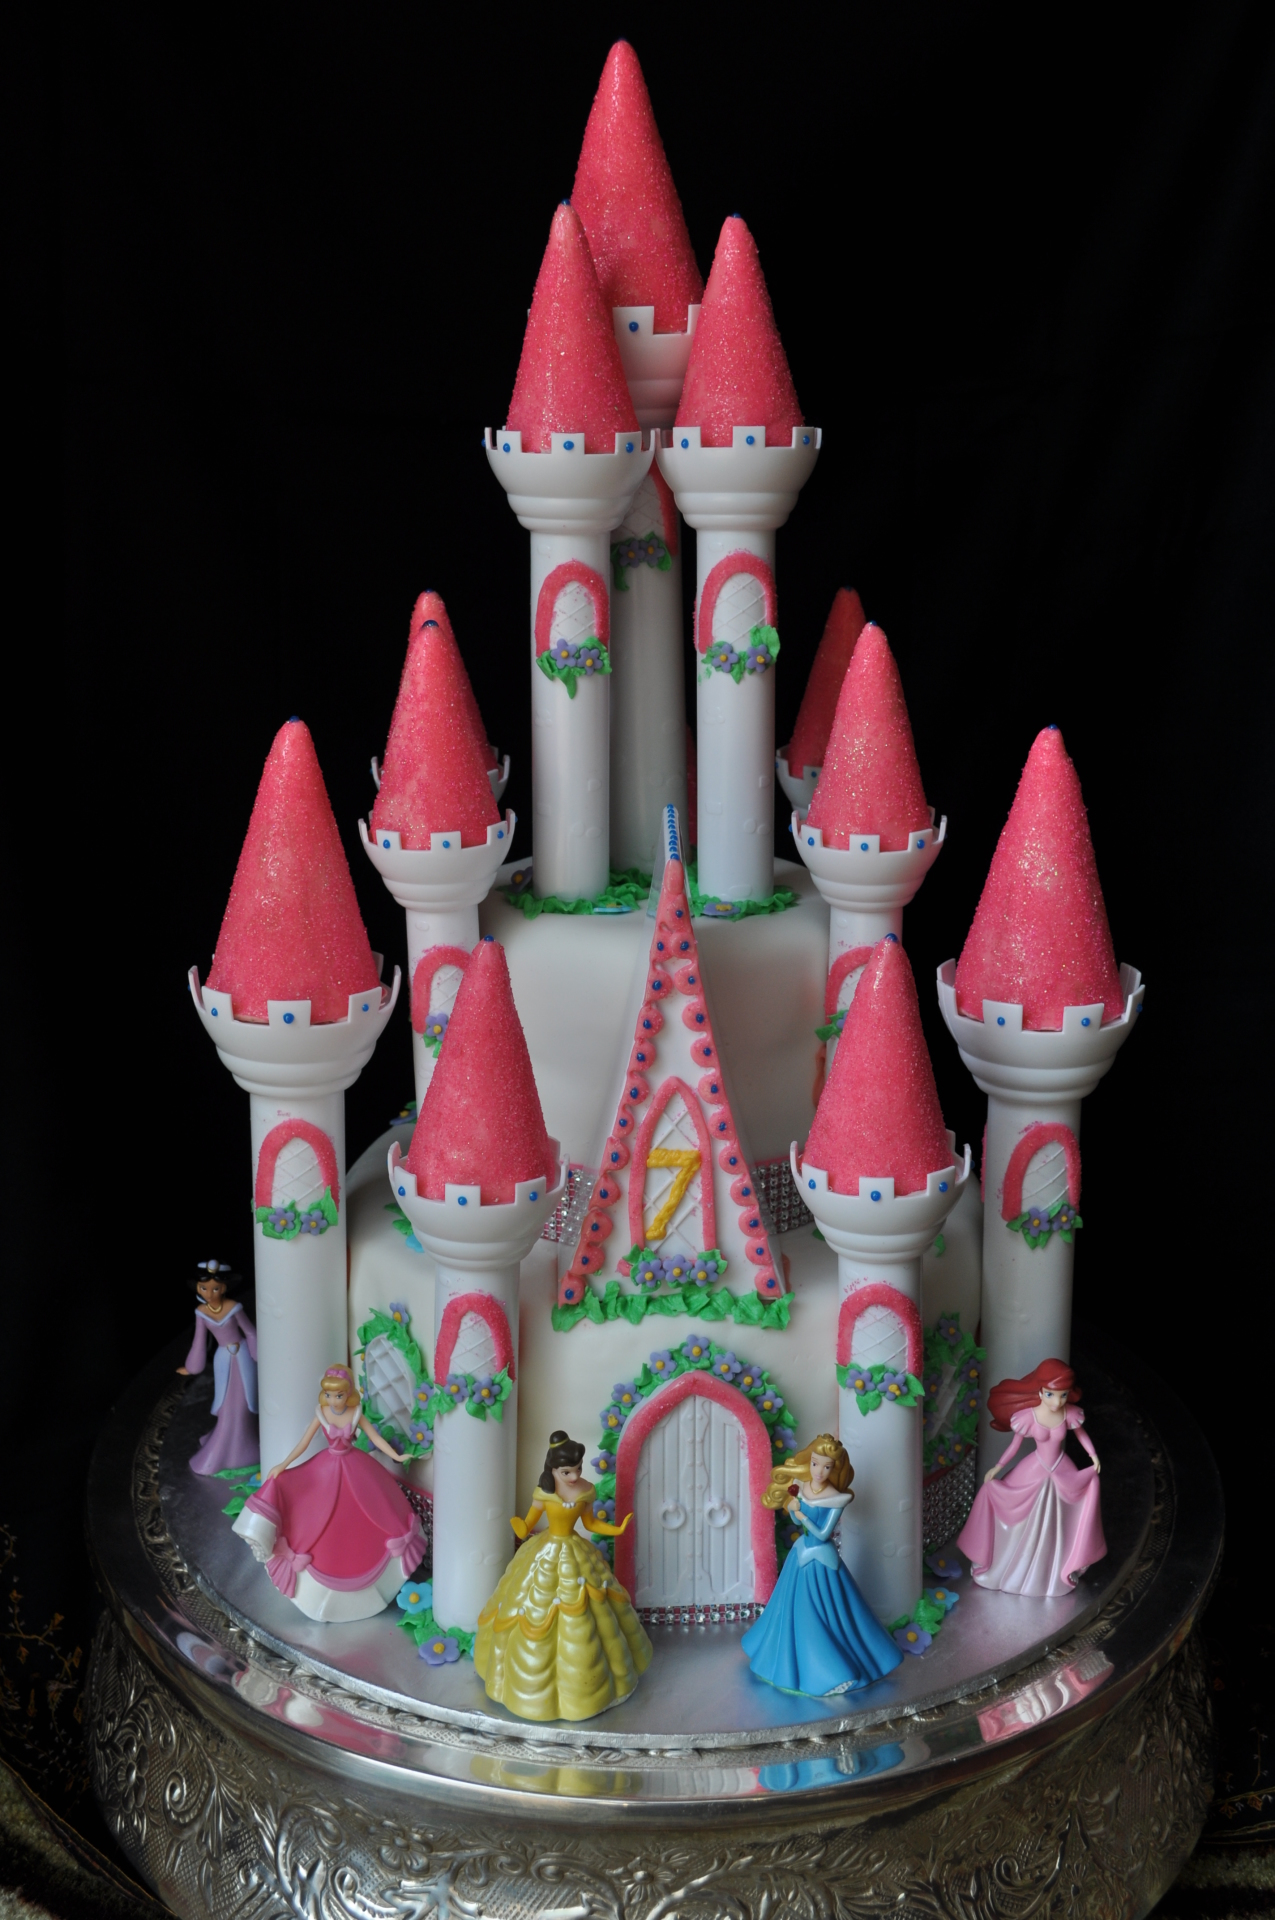 Castle cake, Disney castle cake, princess castle cake